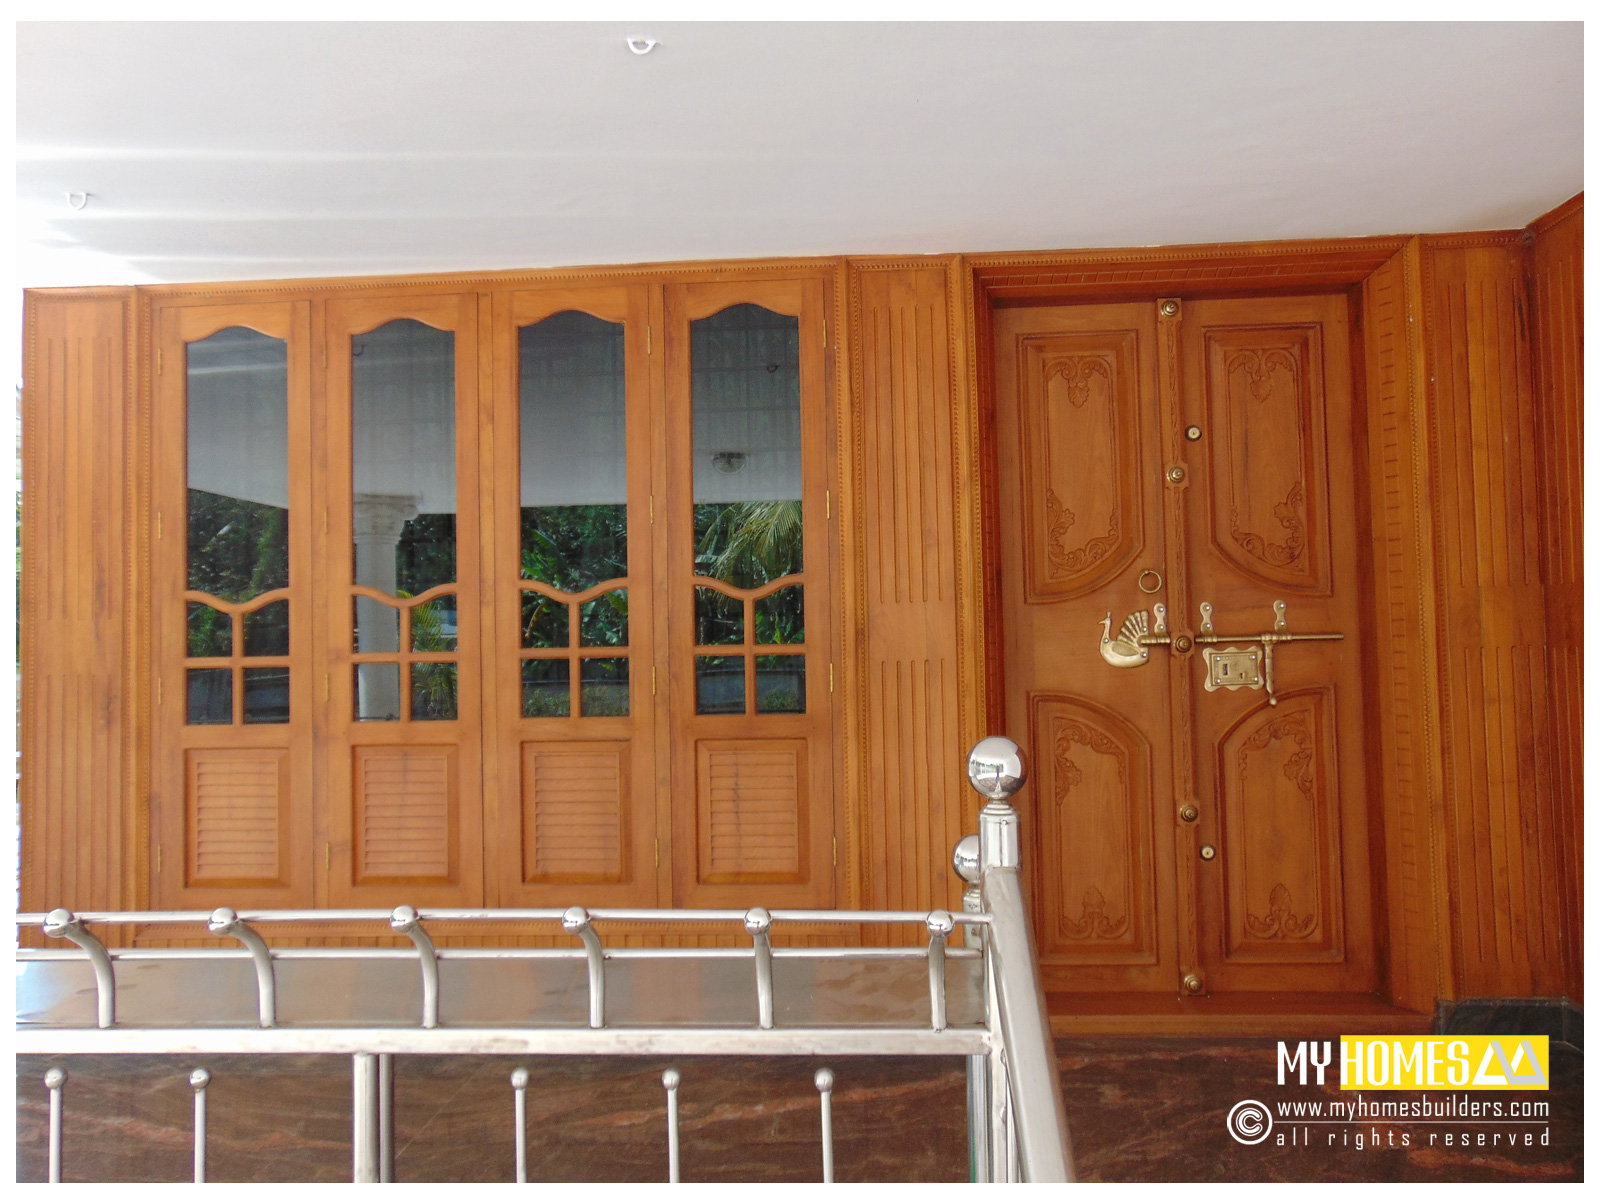 Single and double style door design kerala for house in india for Entrance door designs for flats in india